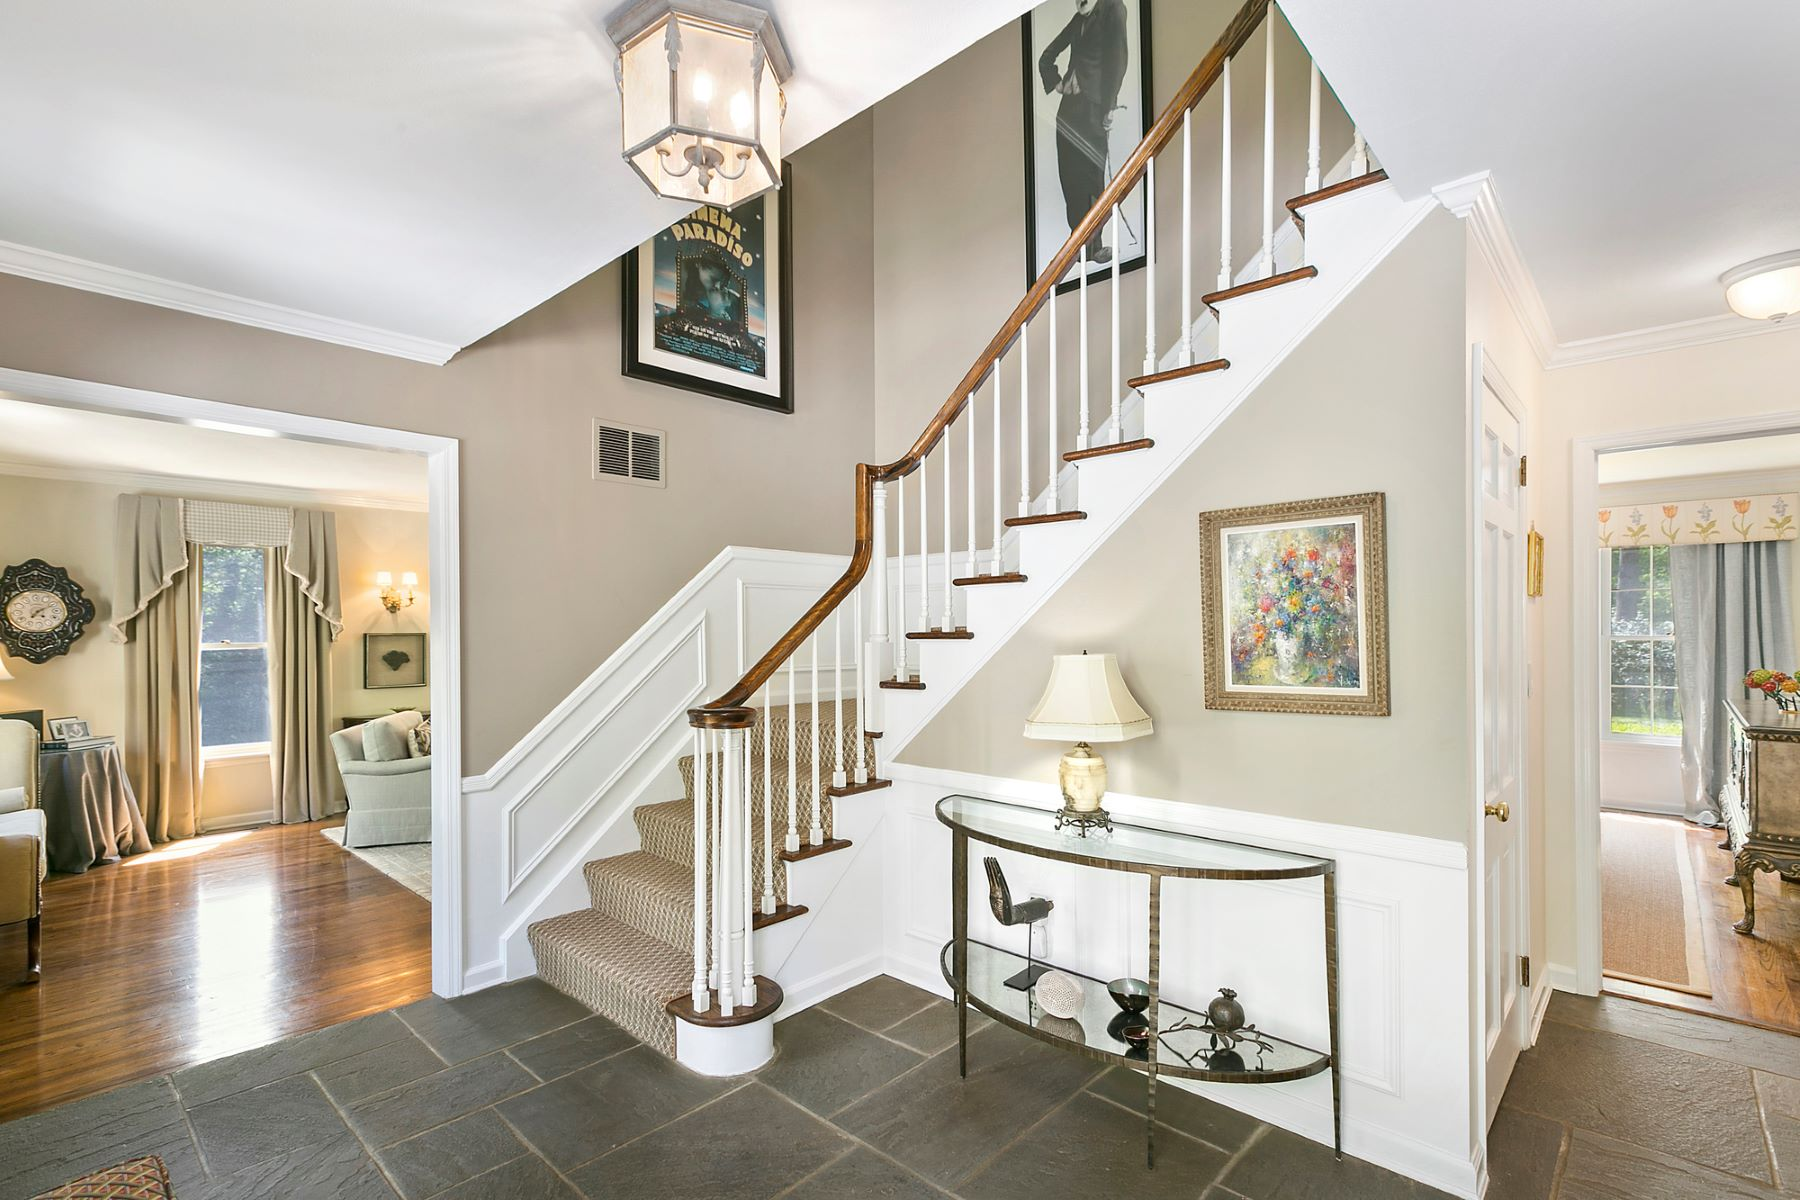 Single Family Homes for Active at Lloyd Harbor 20 East Gate Road Lloyd Harbor, New York 11743 United States